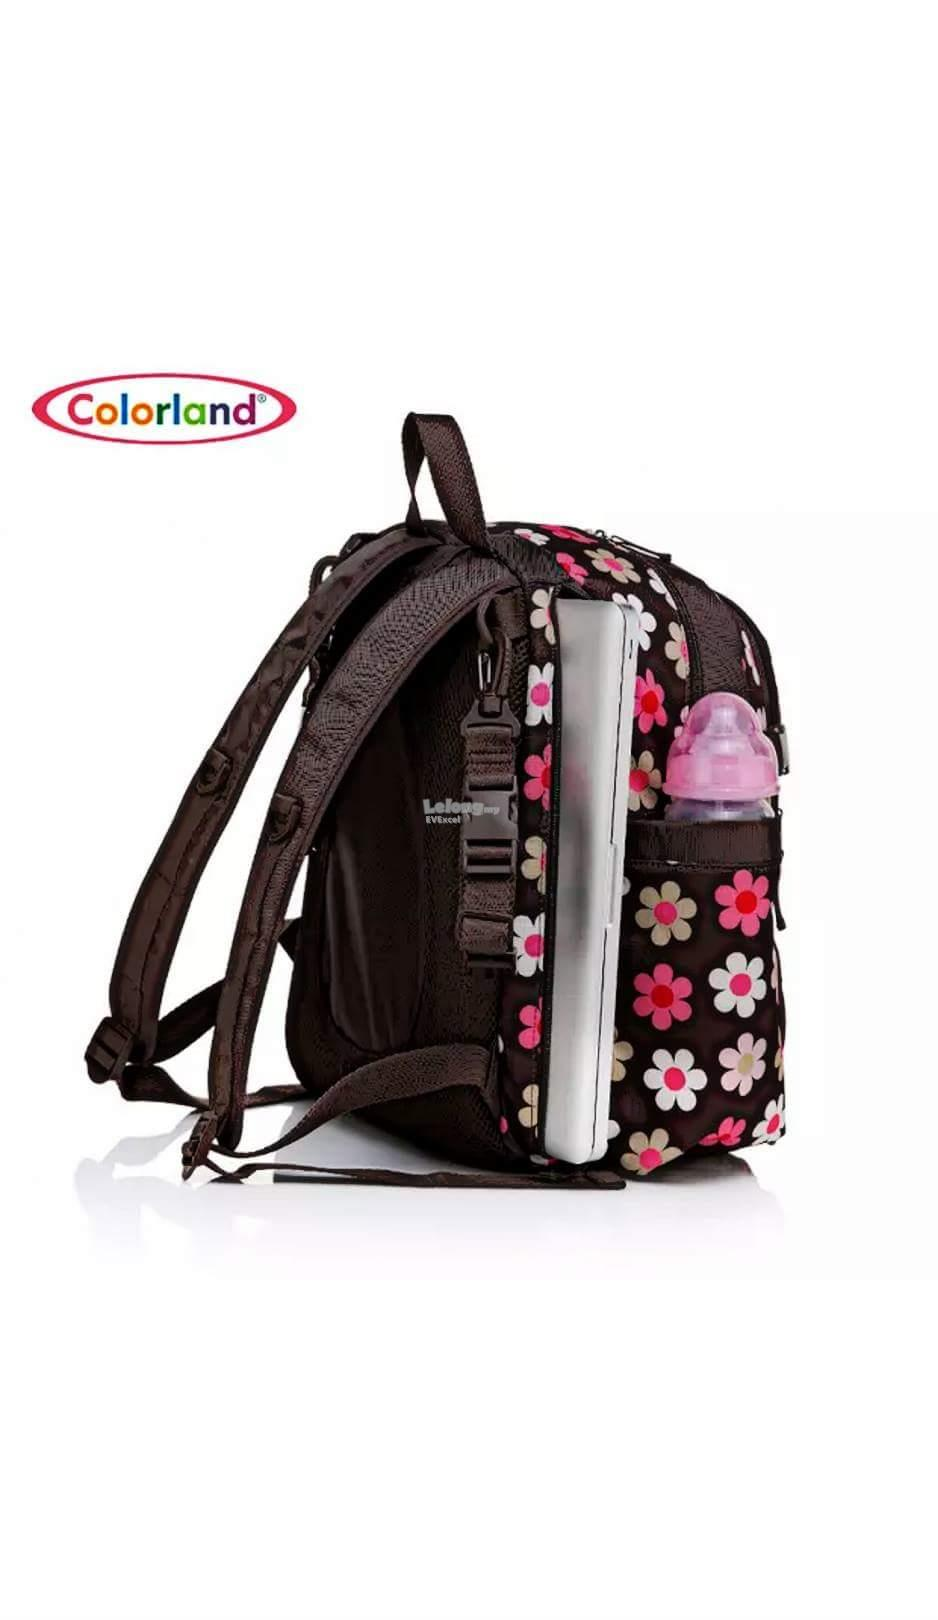 Colorland Abbey Ergo Baby Changing Backpack - Type A